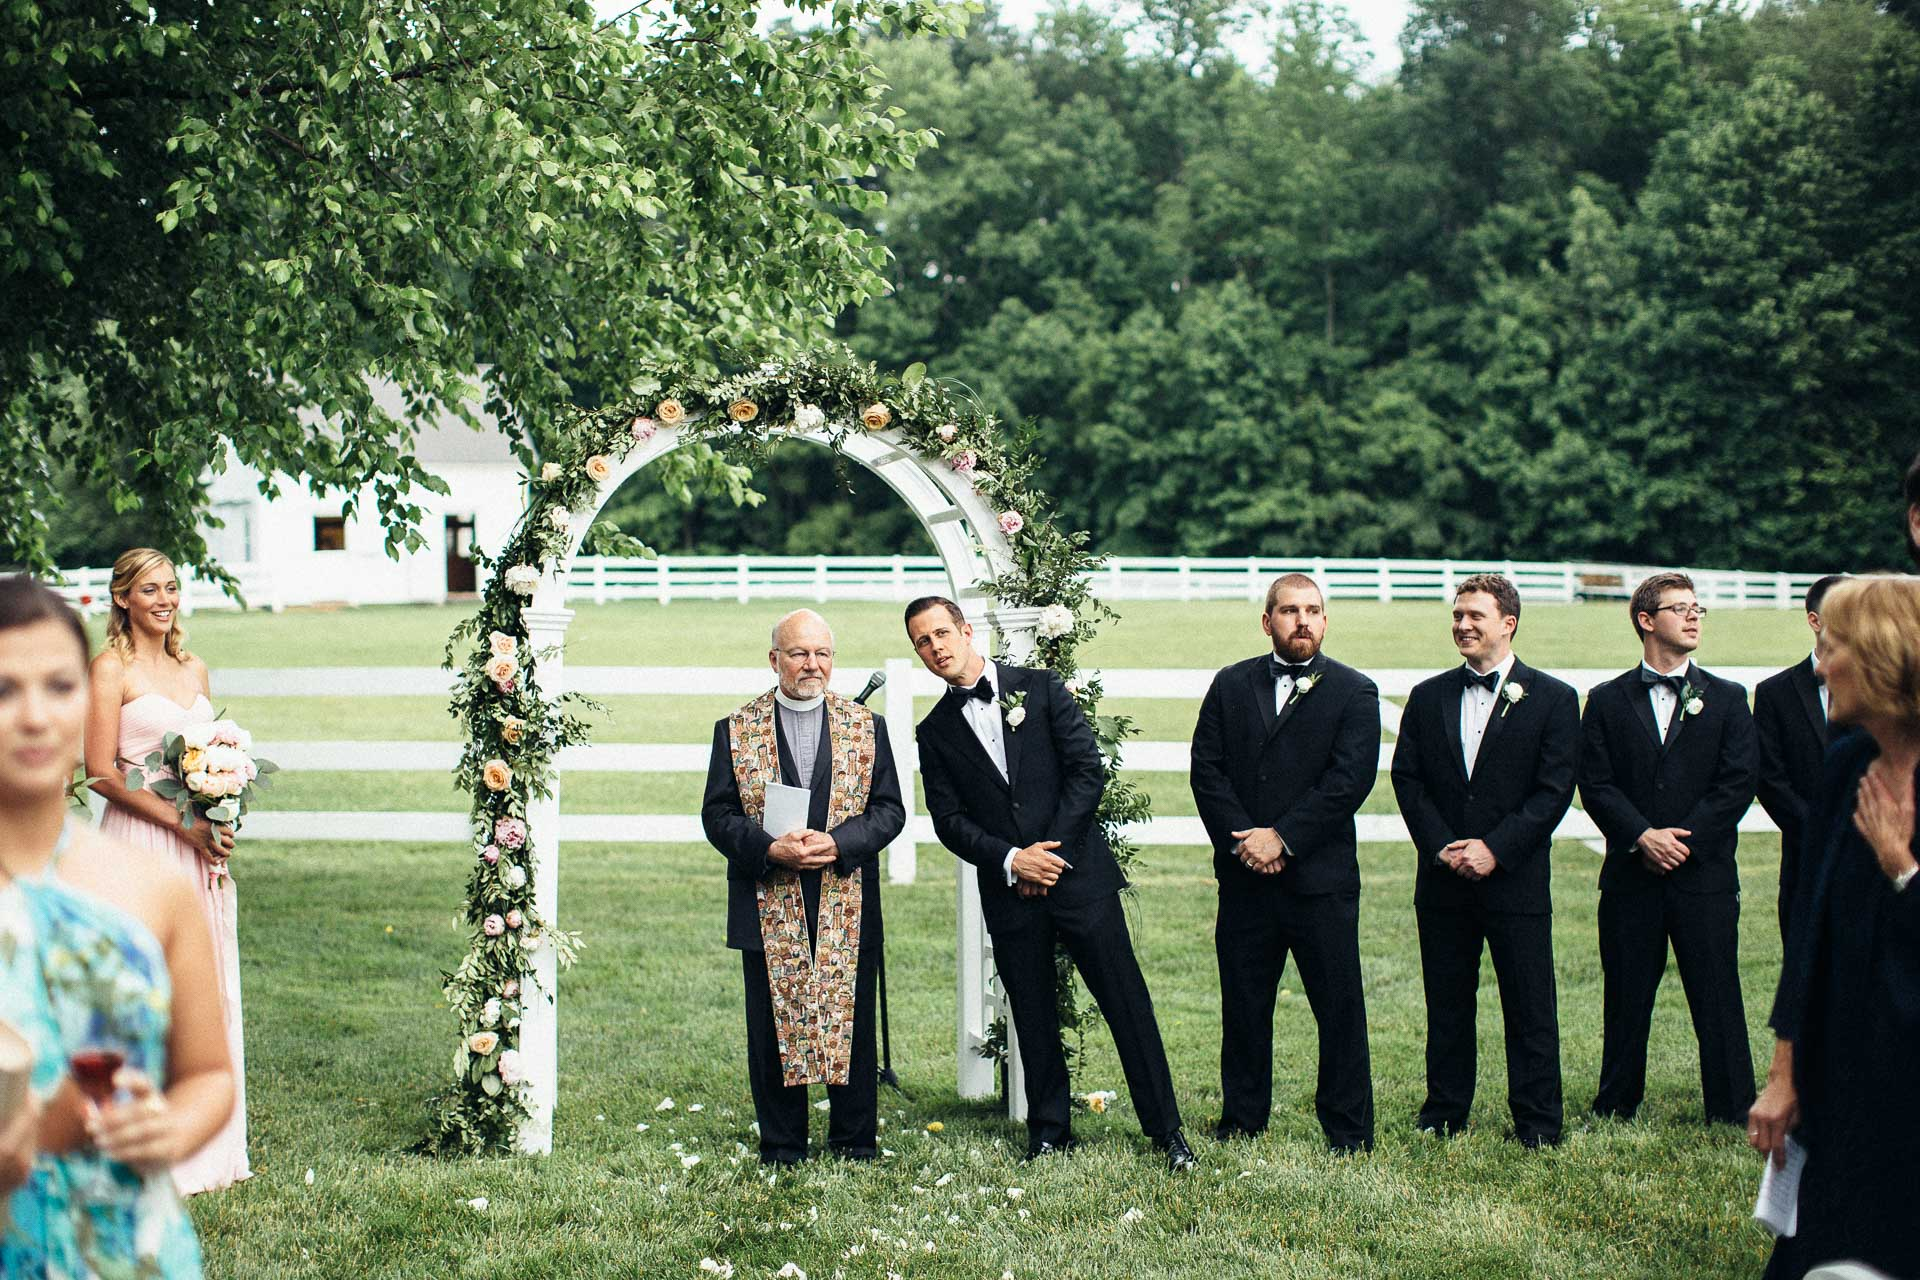 Shawna_Josh_Wedding_Easton_Maryland_JeanLaurentGaudy_063